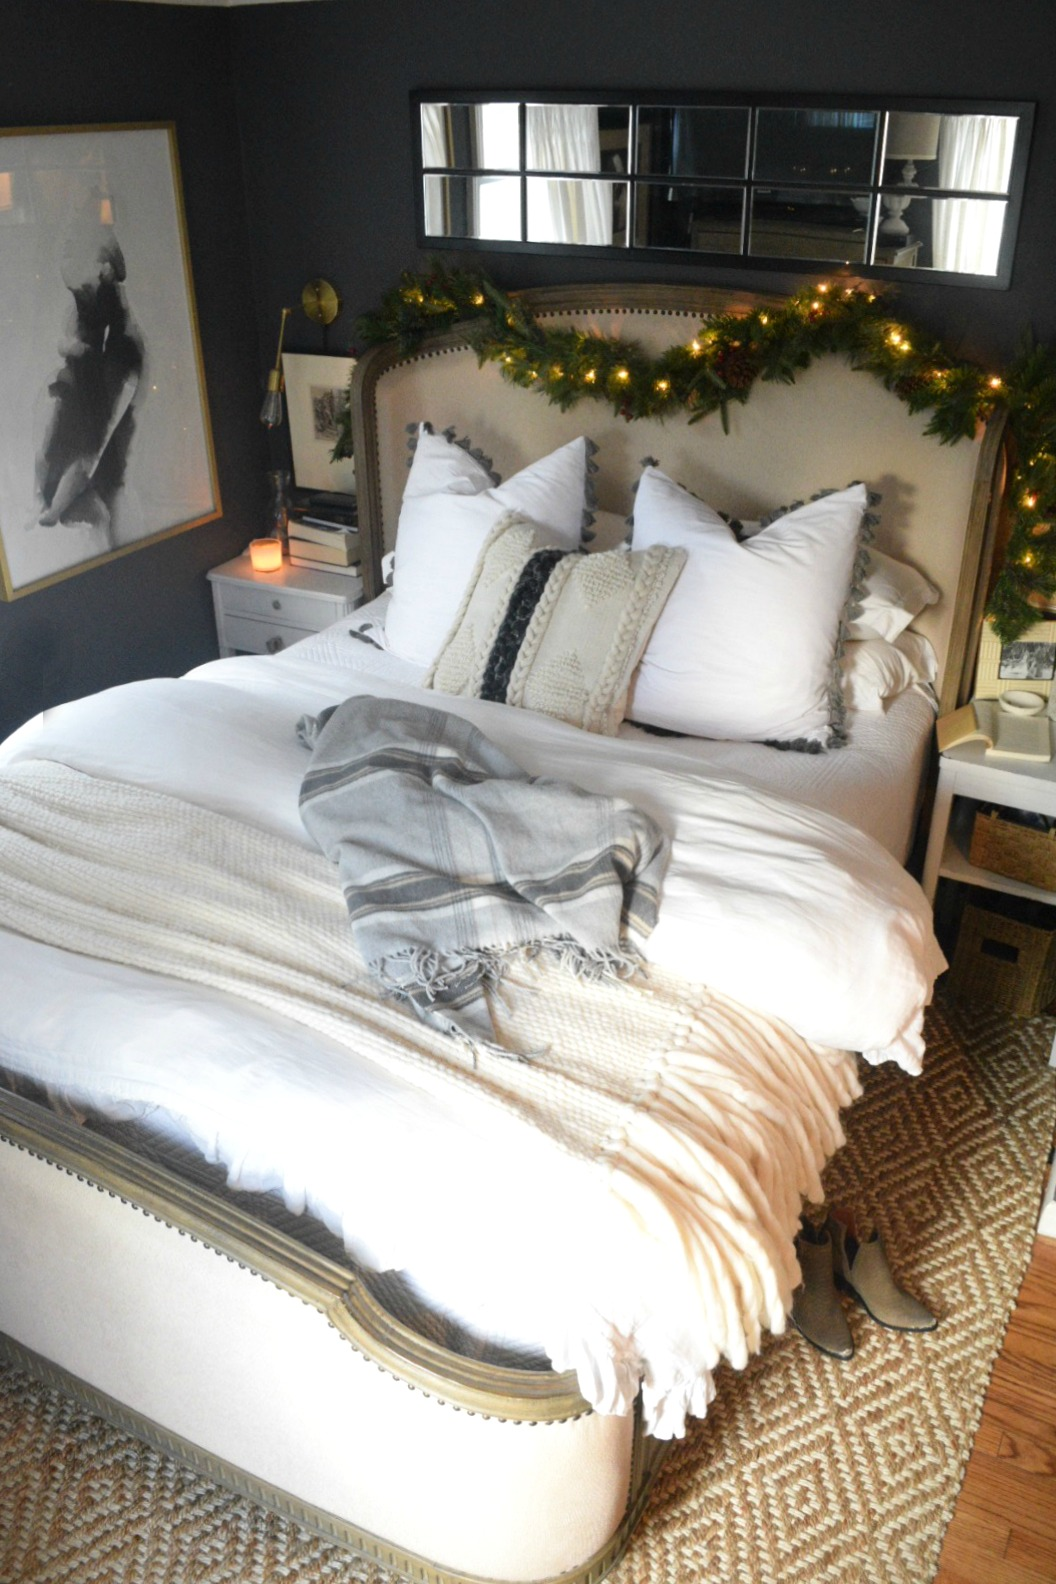 Christmas Bedroom Ideas  Simple Garland And Cozy Bedding